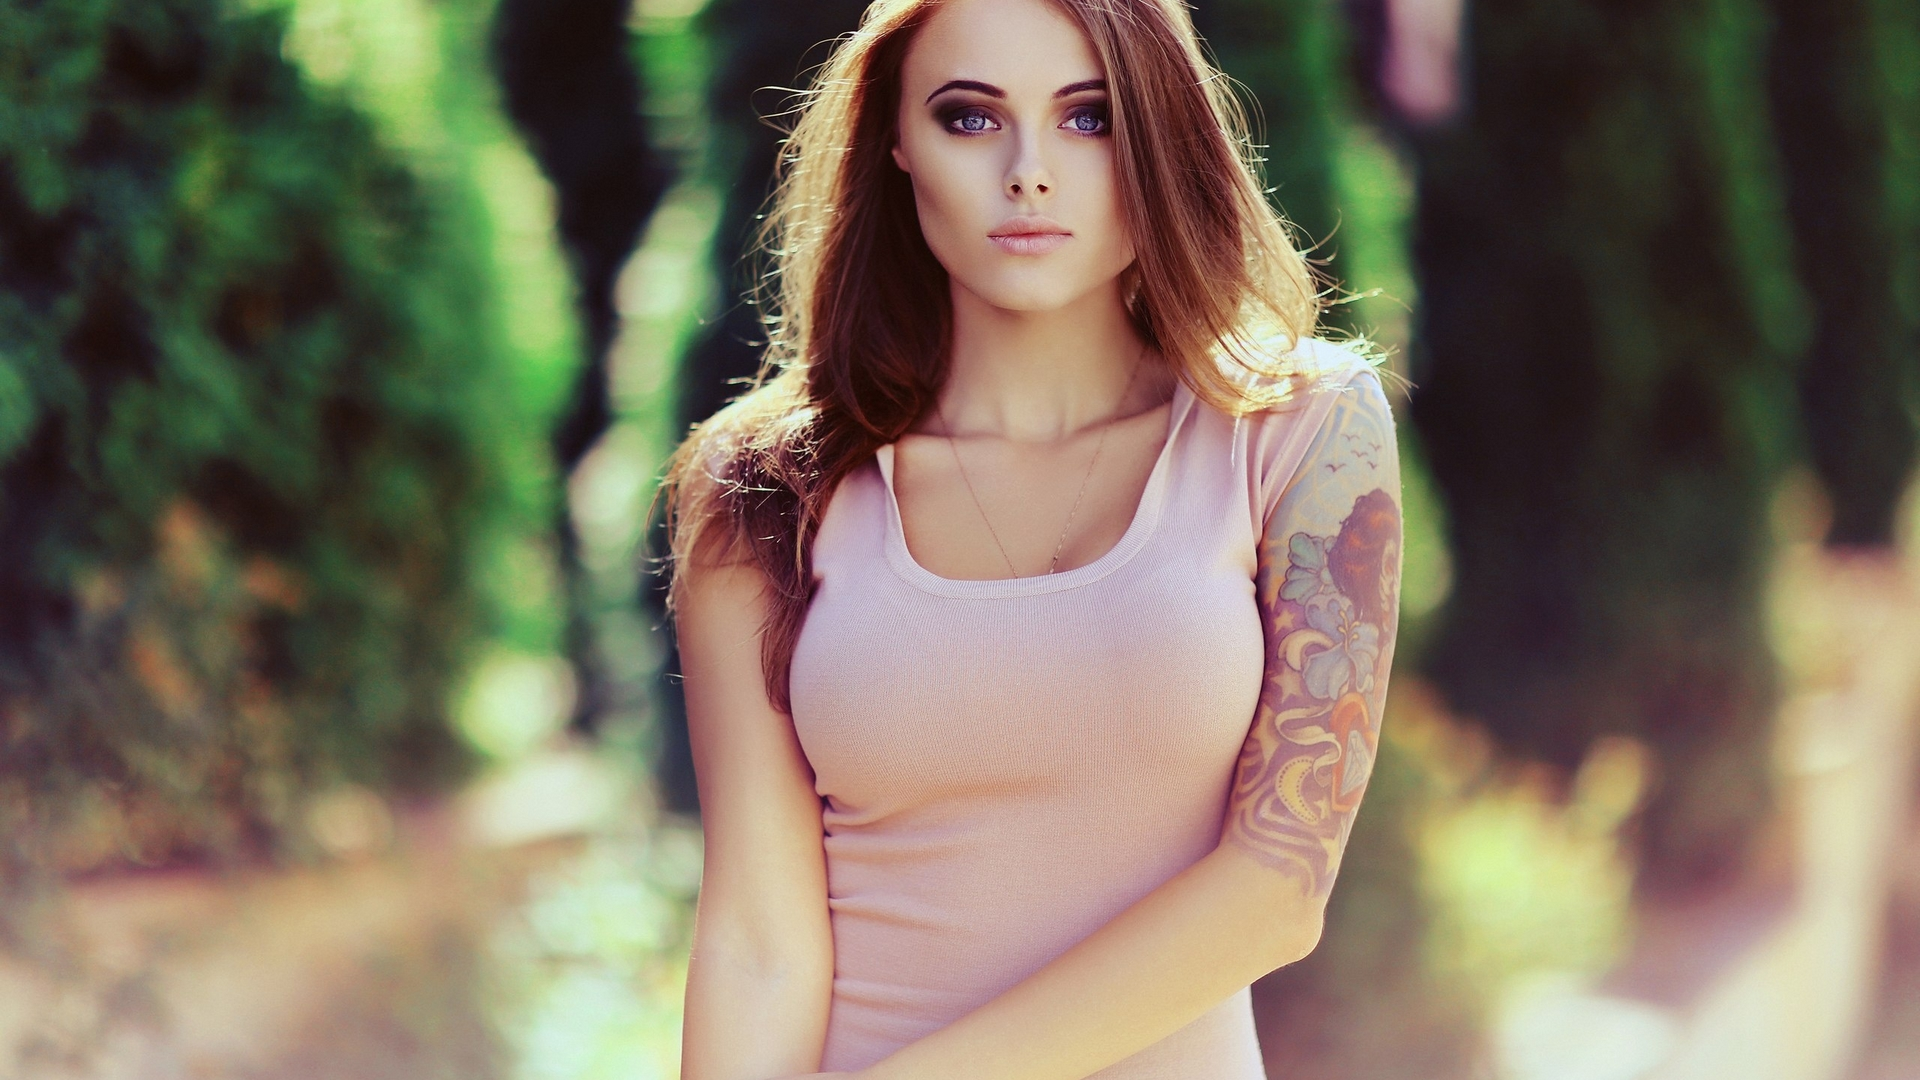 Girls With Tattoos